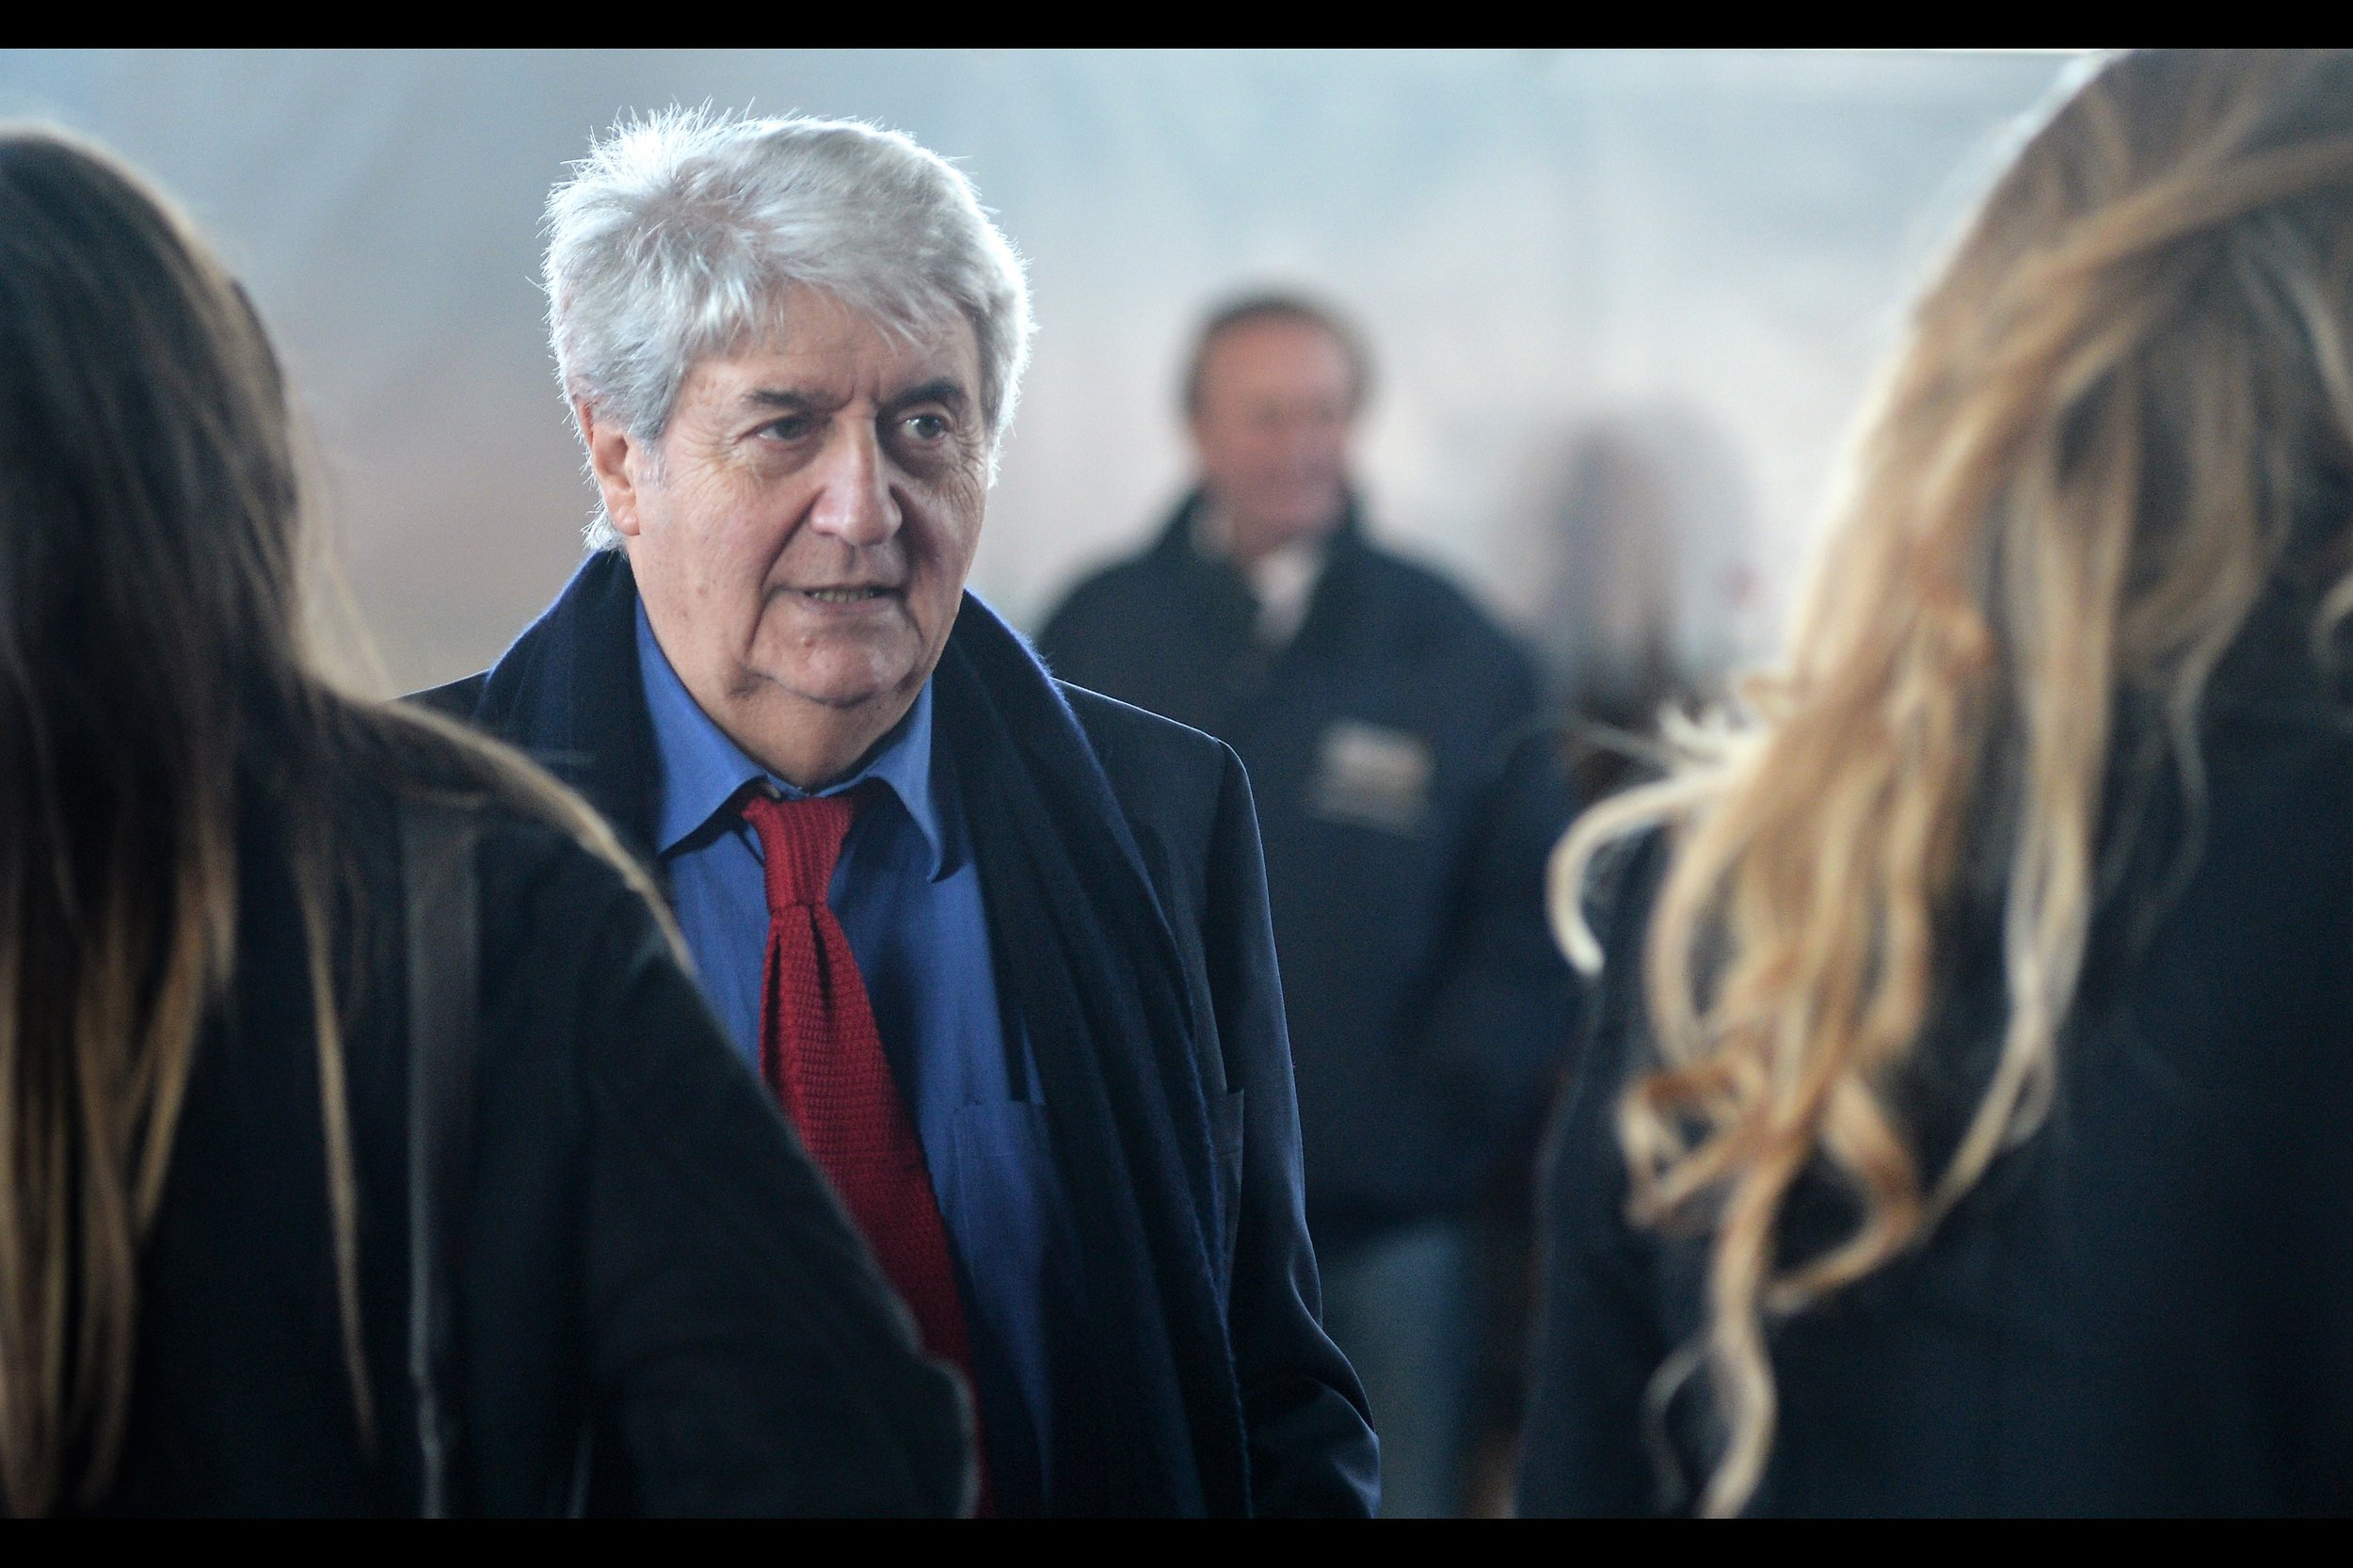 Tom Conti also played the role of 'Prisoner' in 'The Dark Knight Rises' - and... yeah, he does look familiar! (I think!) (he wasn't wearing a tie in the movie..)